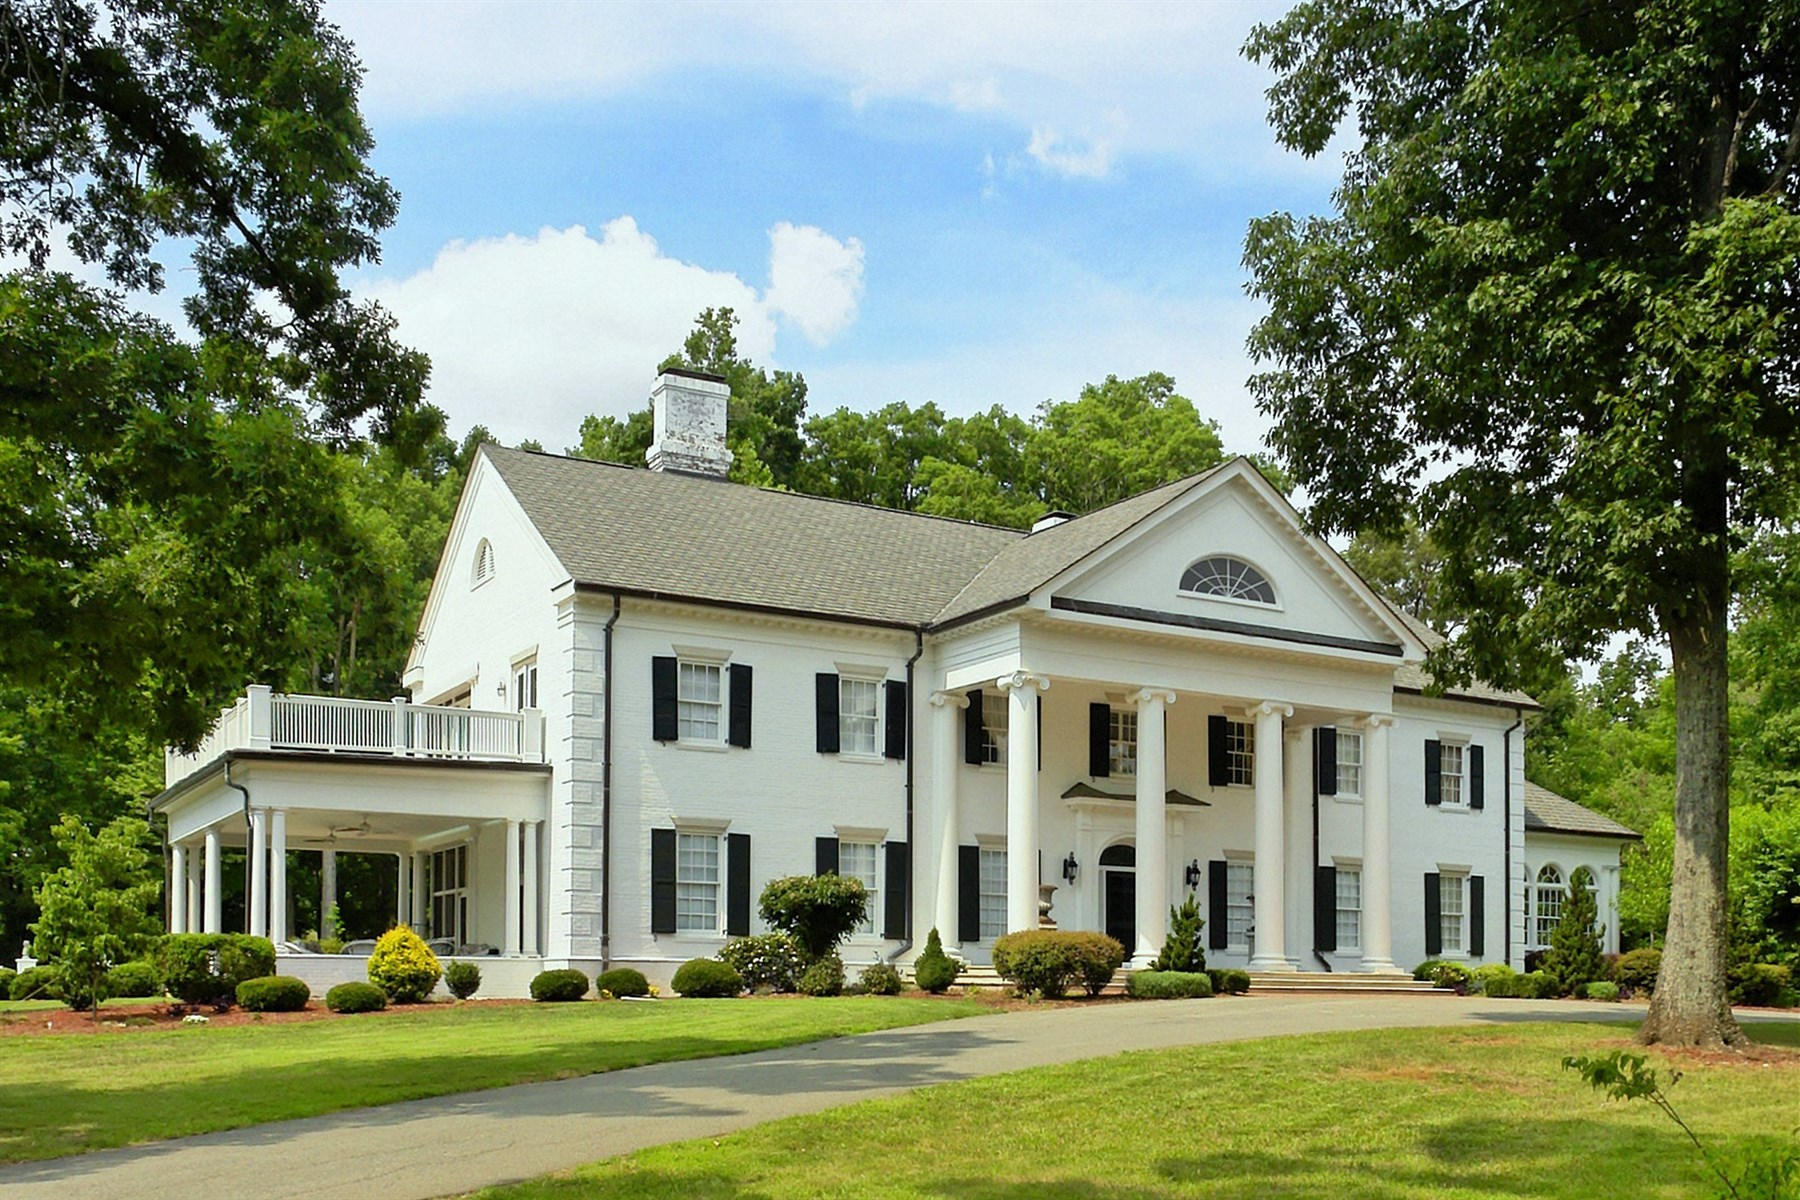 Casa Unifamiliar por un Venta en Highfield Plantation 6700 New Sharon Church Rd Rougemont, Carolina Del Norte 27572 Estados UnidosEn/Alrededor: Cary, Chapel Hill, Durham, Raleigh